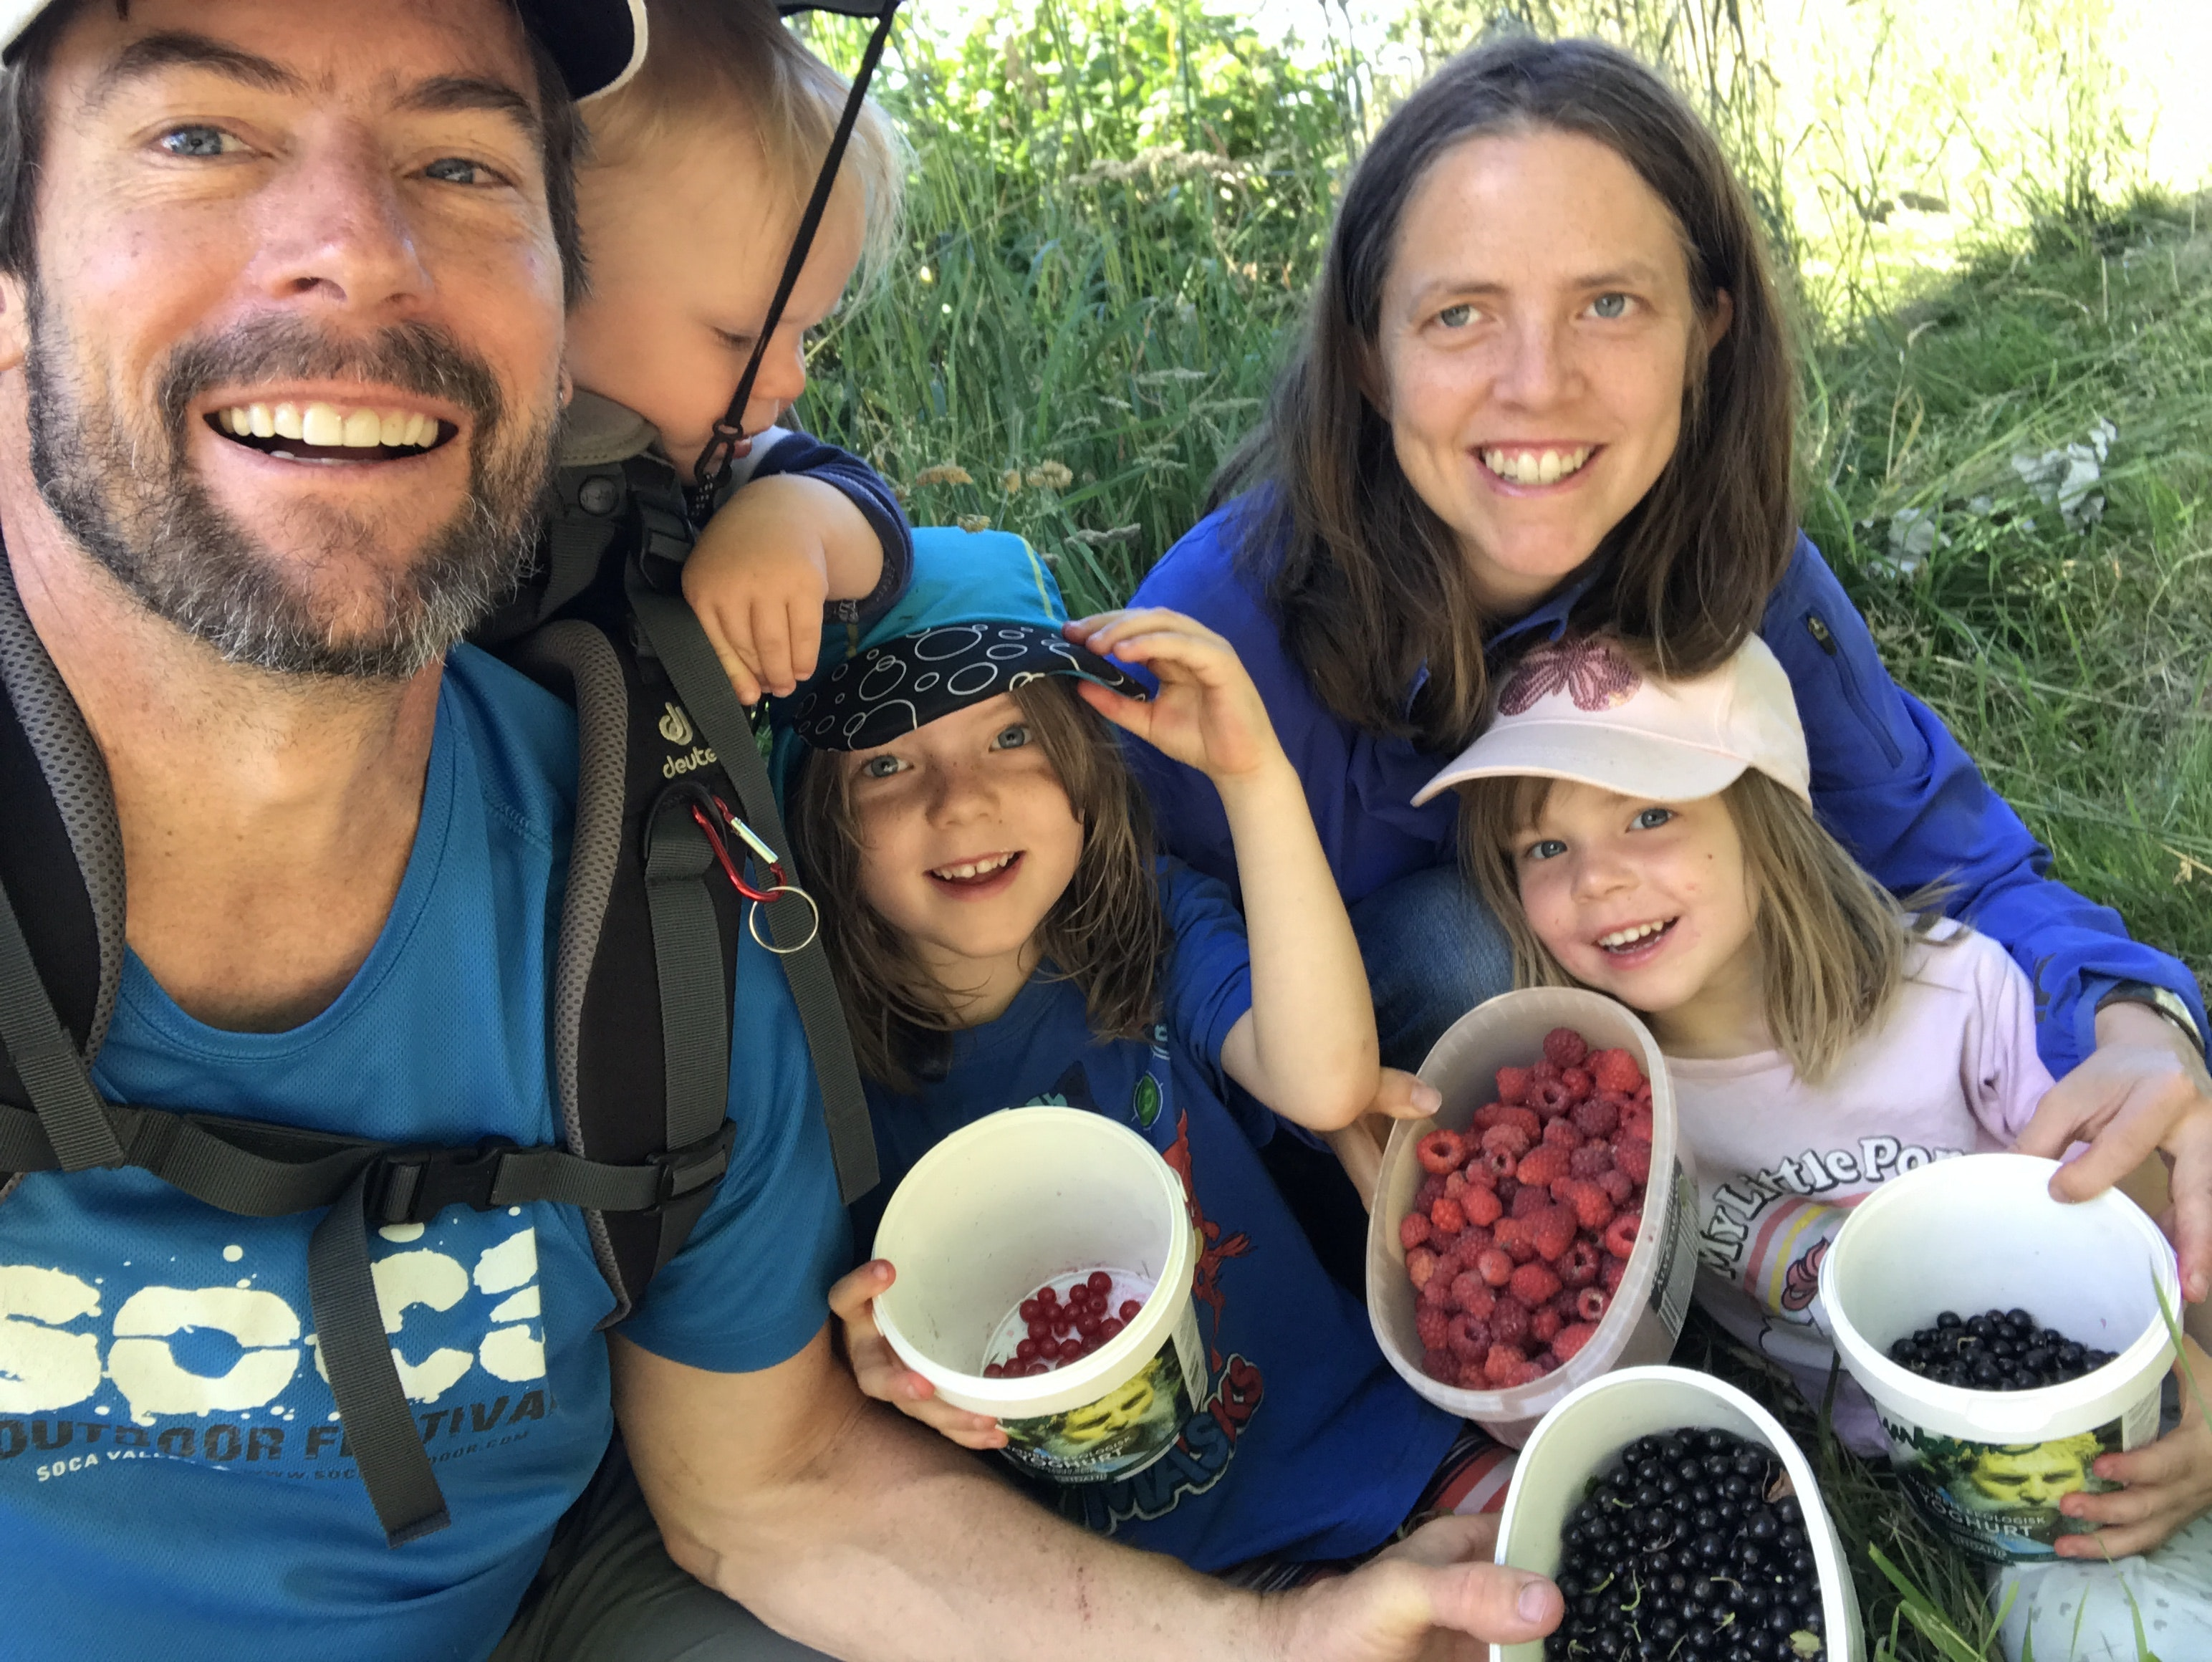 Chris (from left), Elliot, Moa, Emma, and Lyra with their morning haul of black currants, raspberries, and red currants from the fields below their home.